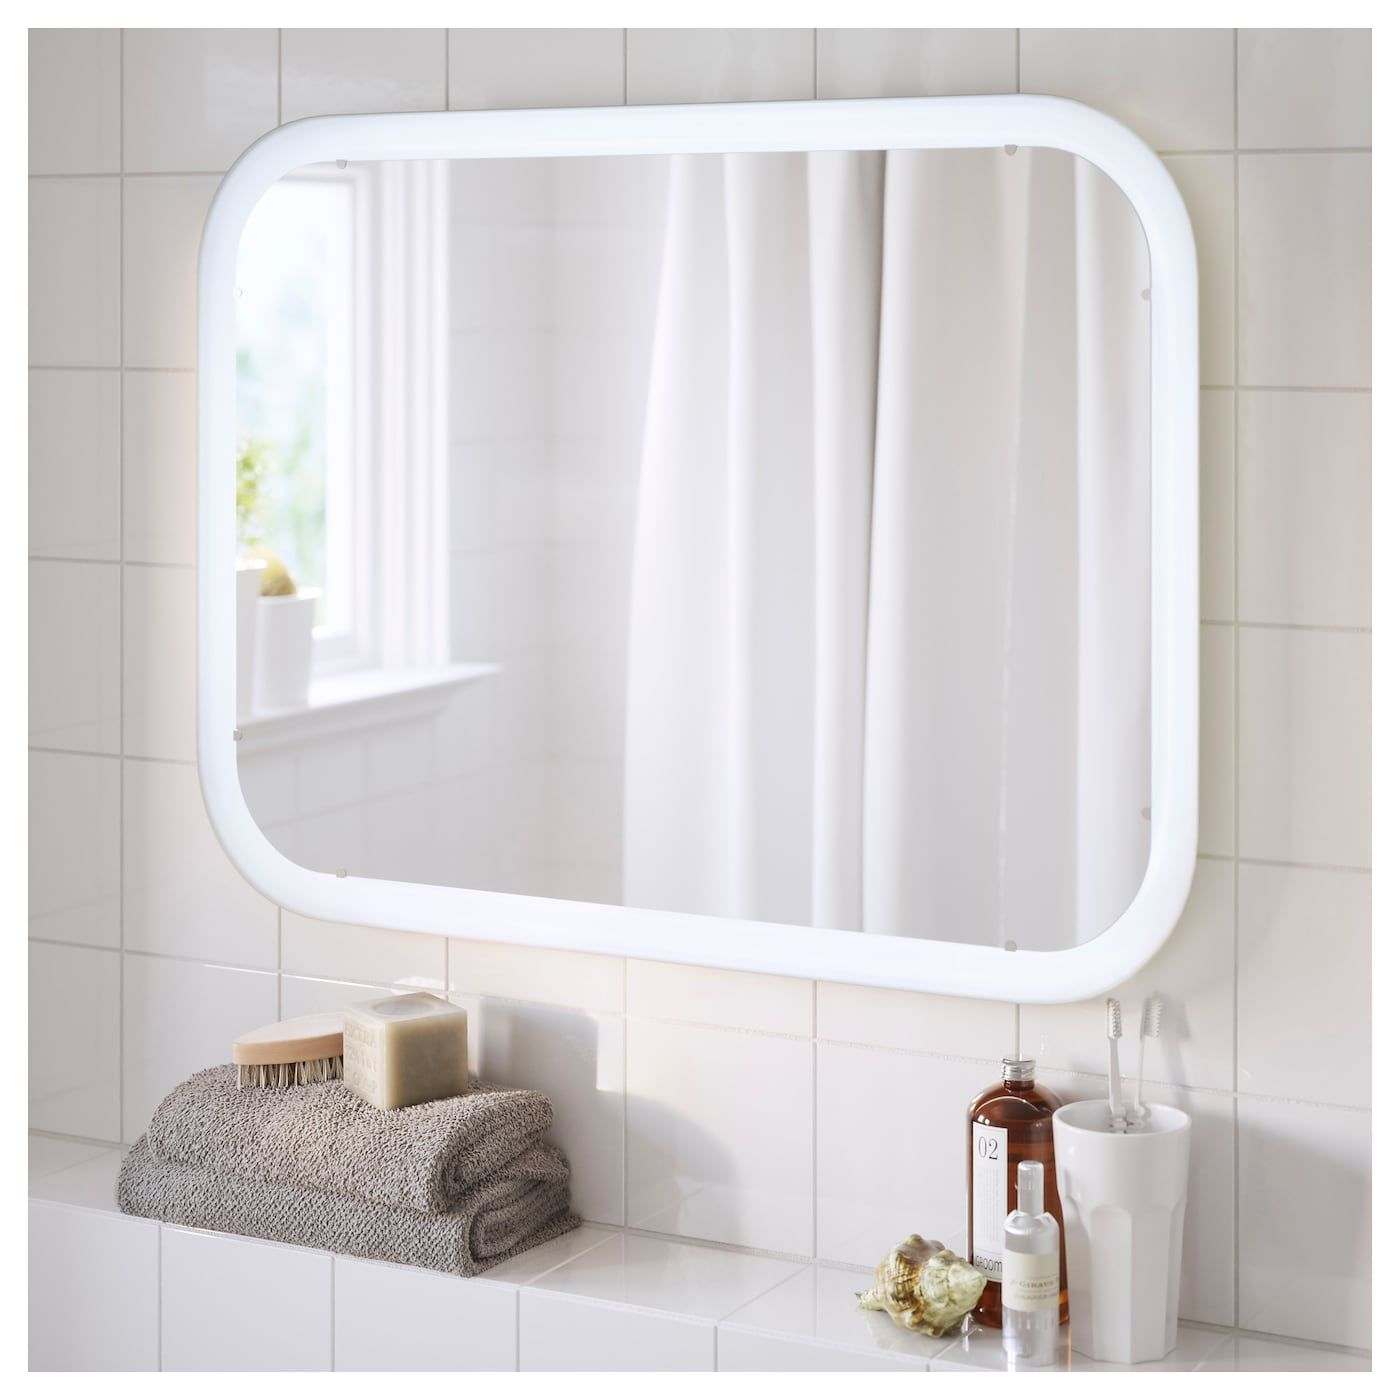 Storjorm Spiegel Mit Beleuchtung Weiss Ikea Deutschland Mirror With Built In Lights Ikea Mirror Lights Ikea Bathroom Mirror